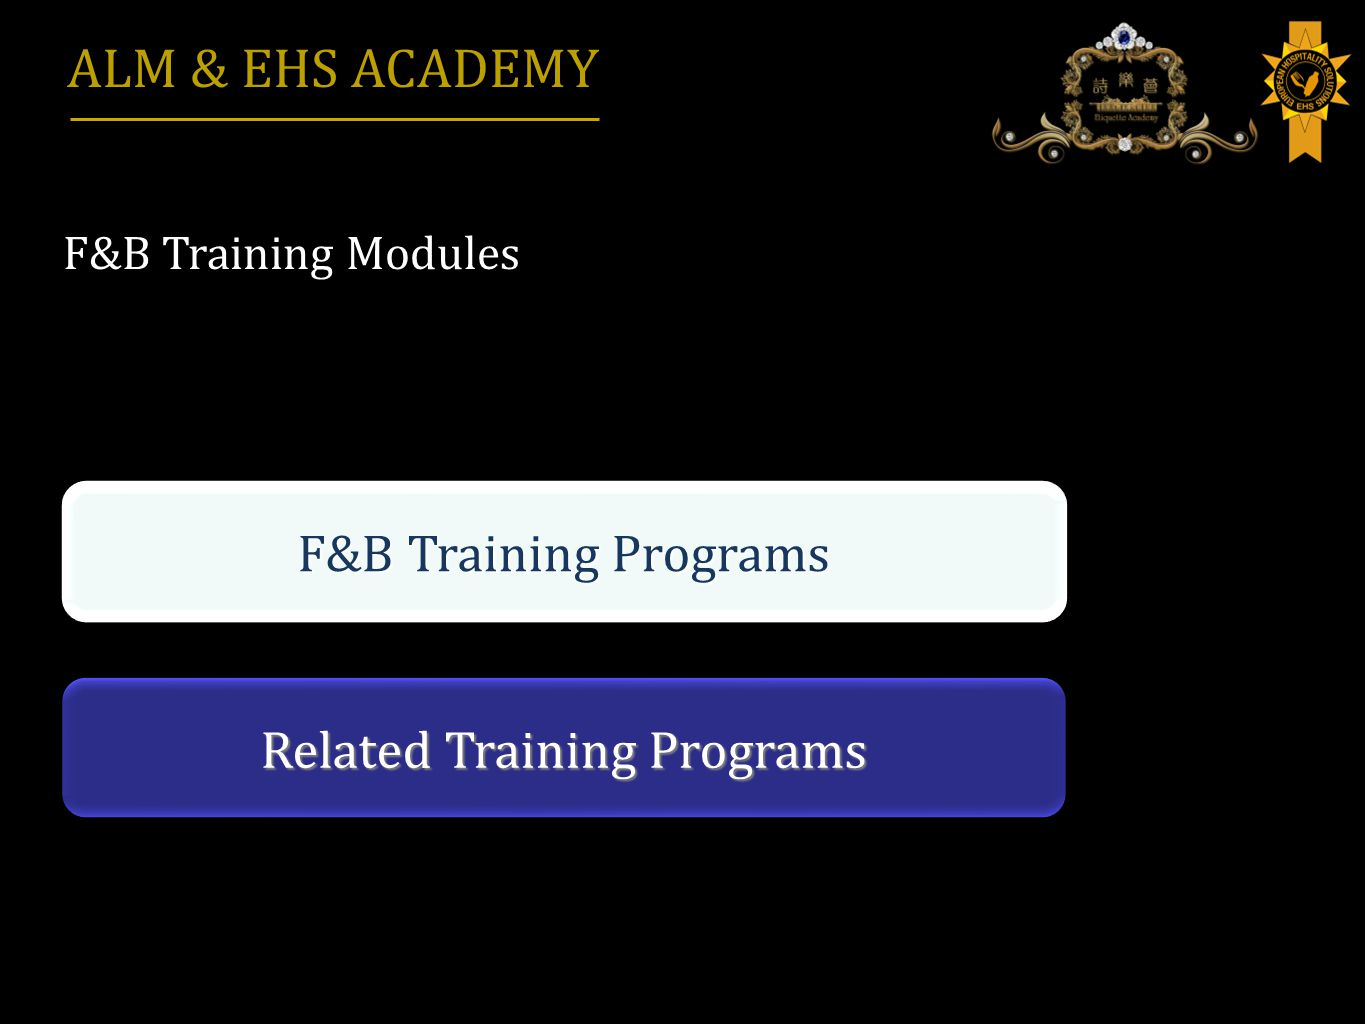 Related Training Programs F&B Training Programs F&B Training Modules ALM & EHS ACADEMY